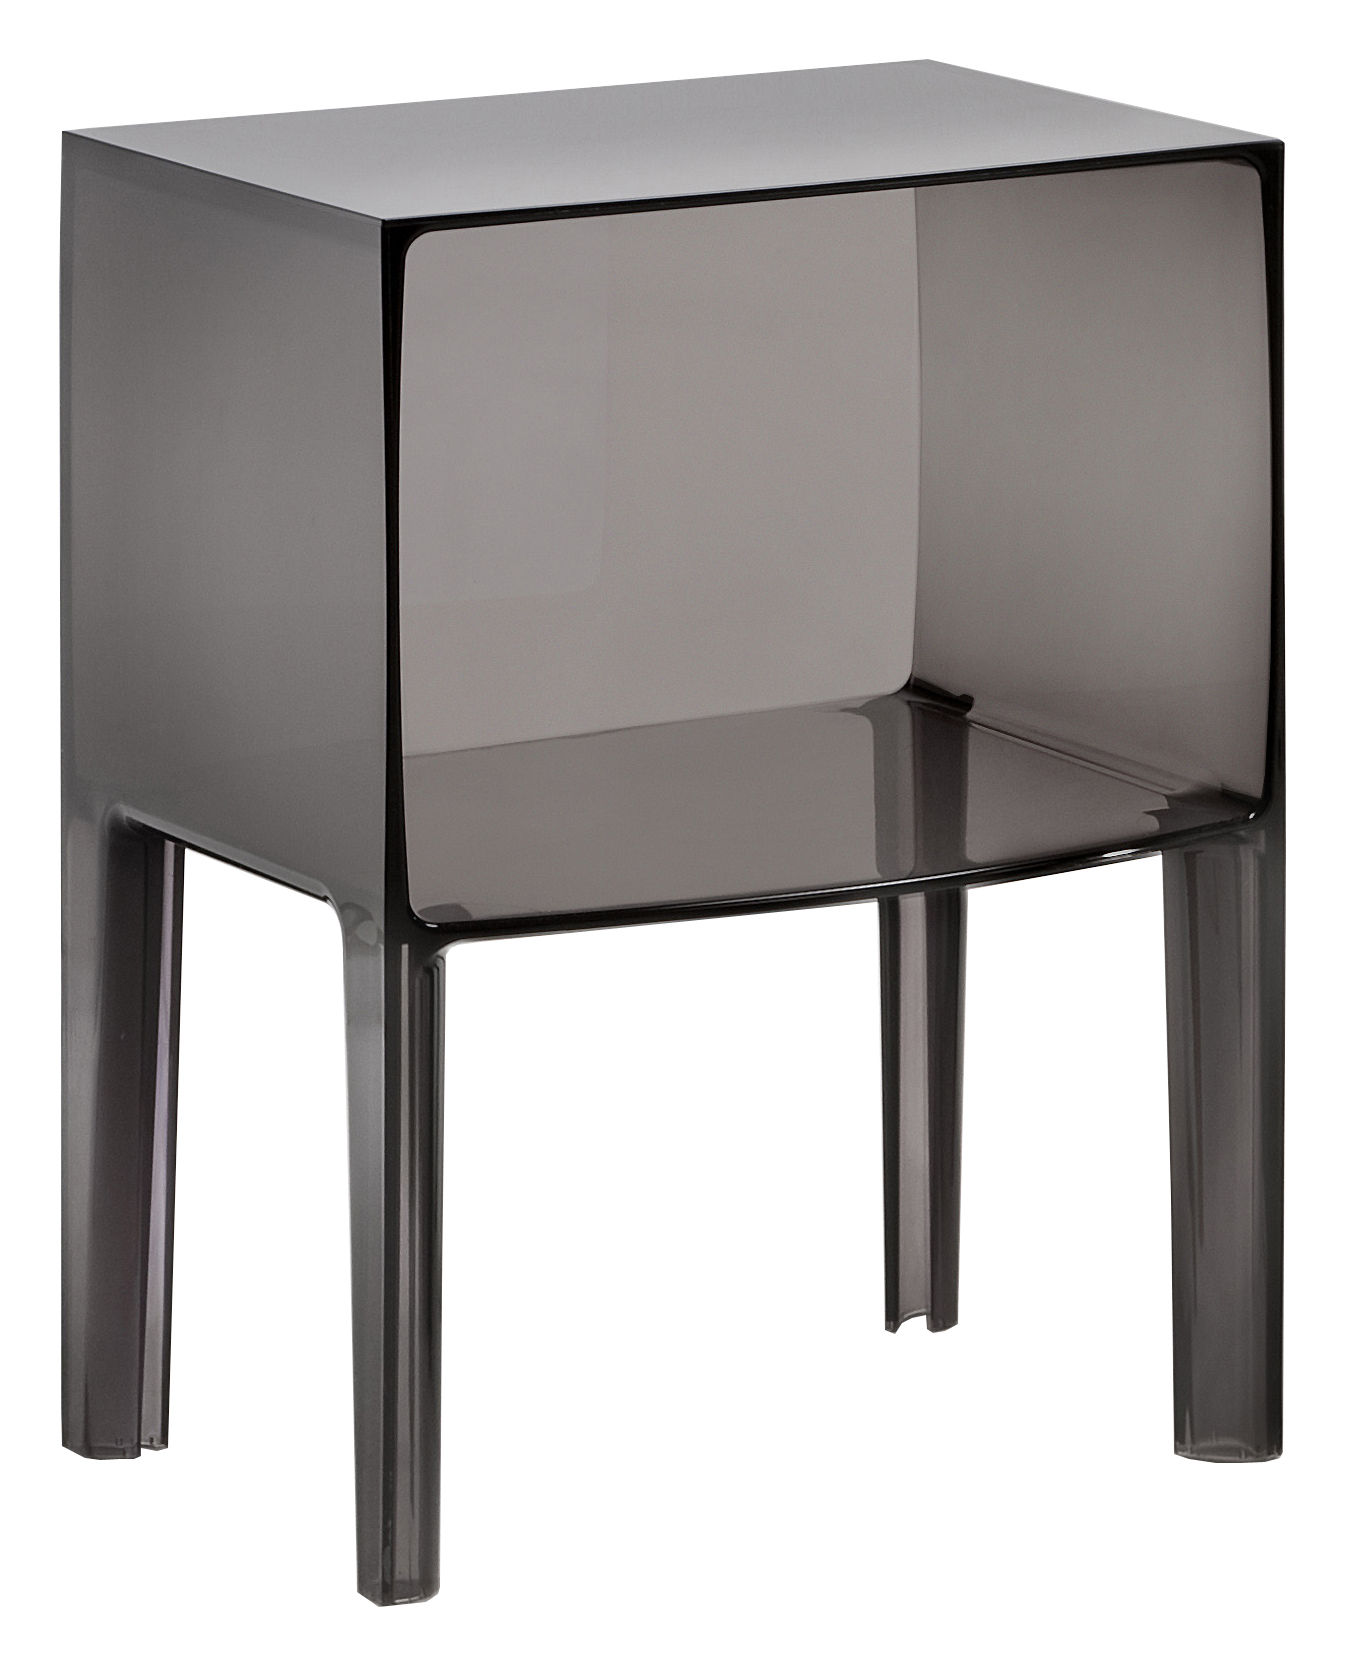 Furniture - Bedside & End tables - Small Ghost Buster Bedside table by Kartell - Smoke - PMMA